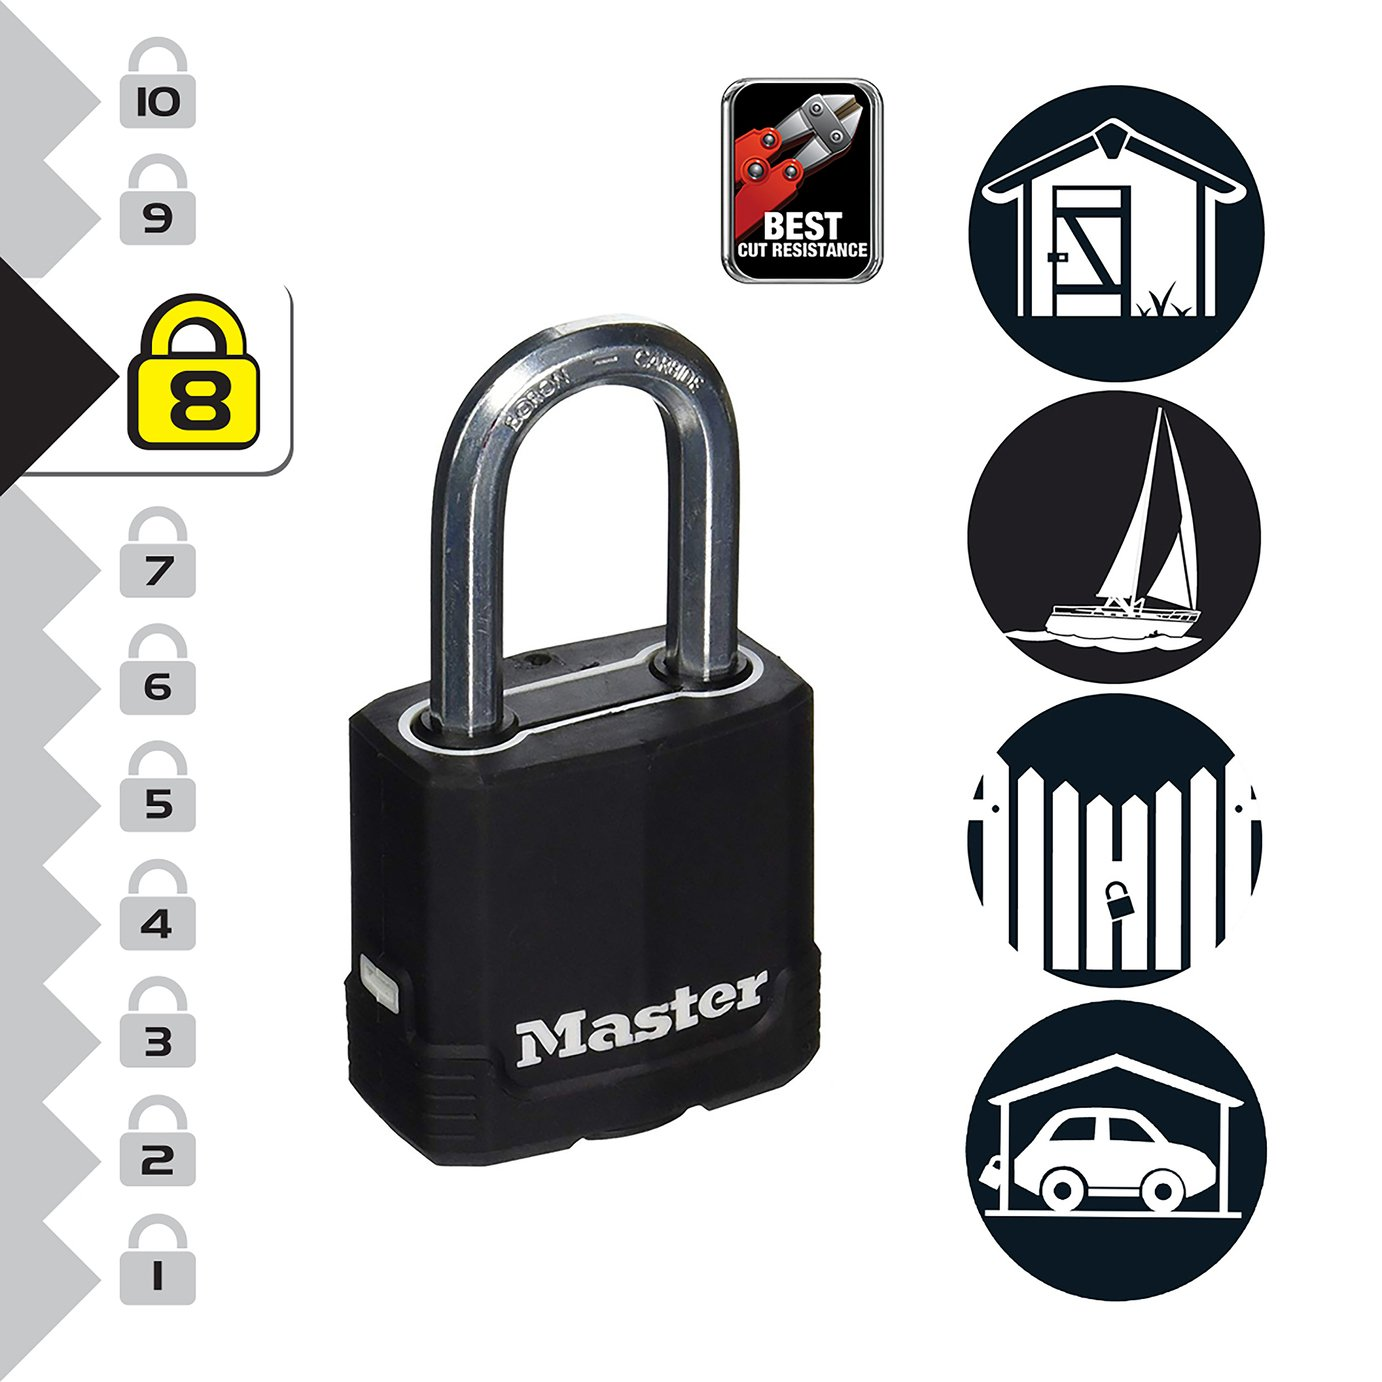 Master Lock Anti Rust Cover Padlock 4 Keys